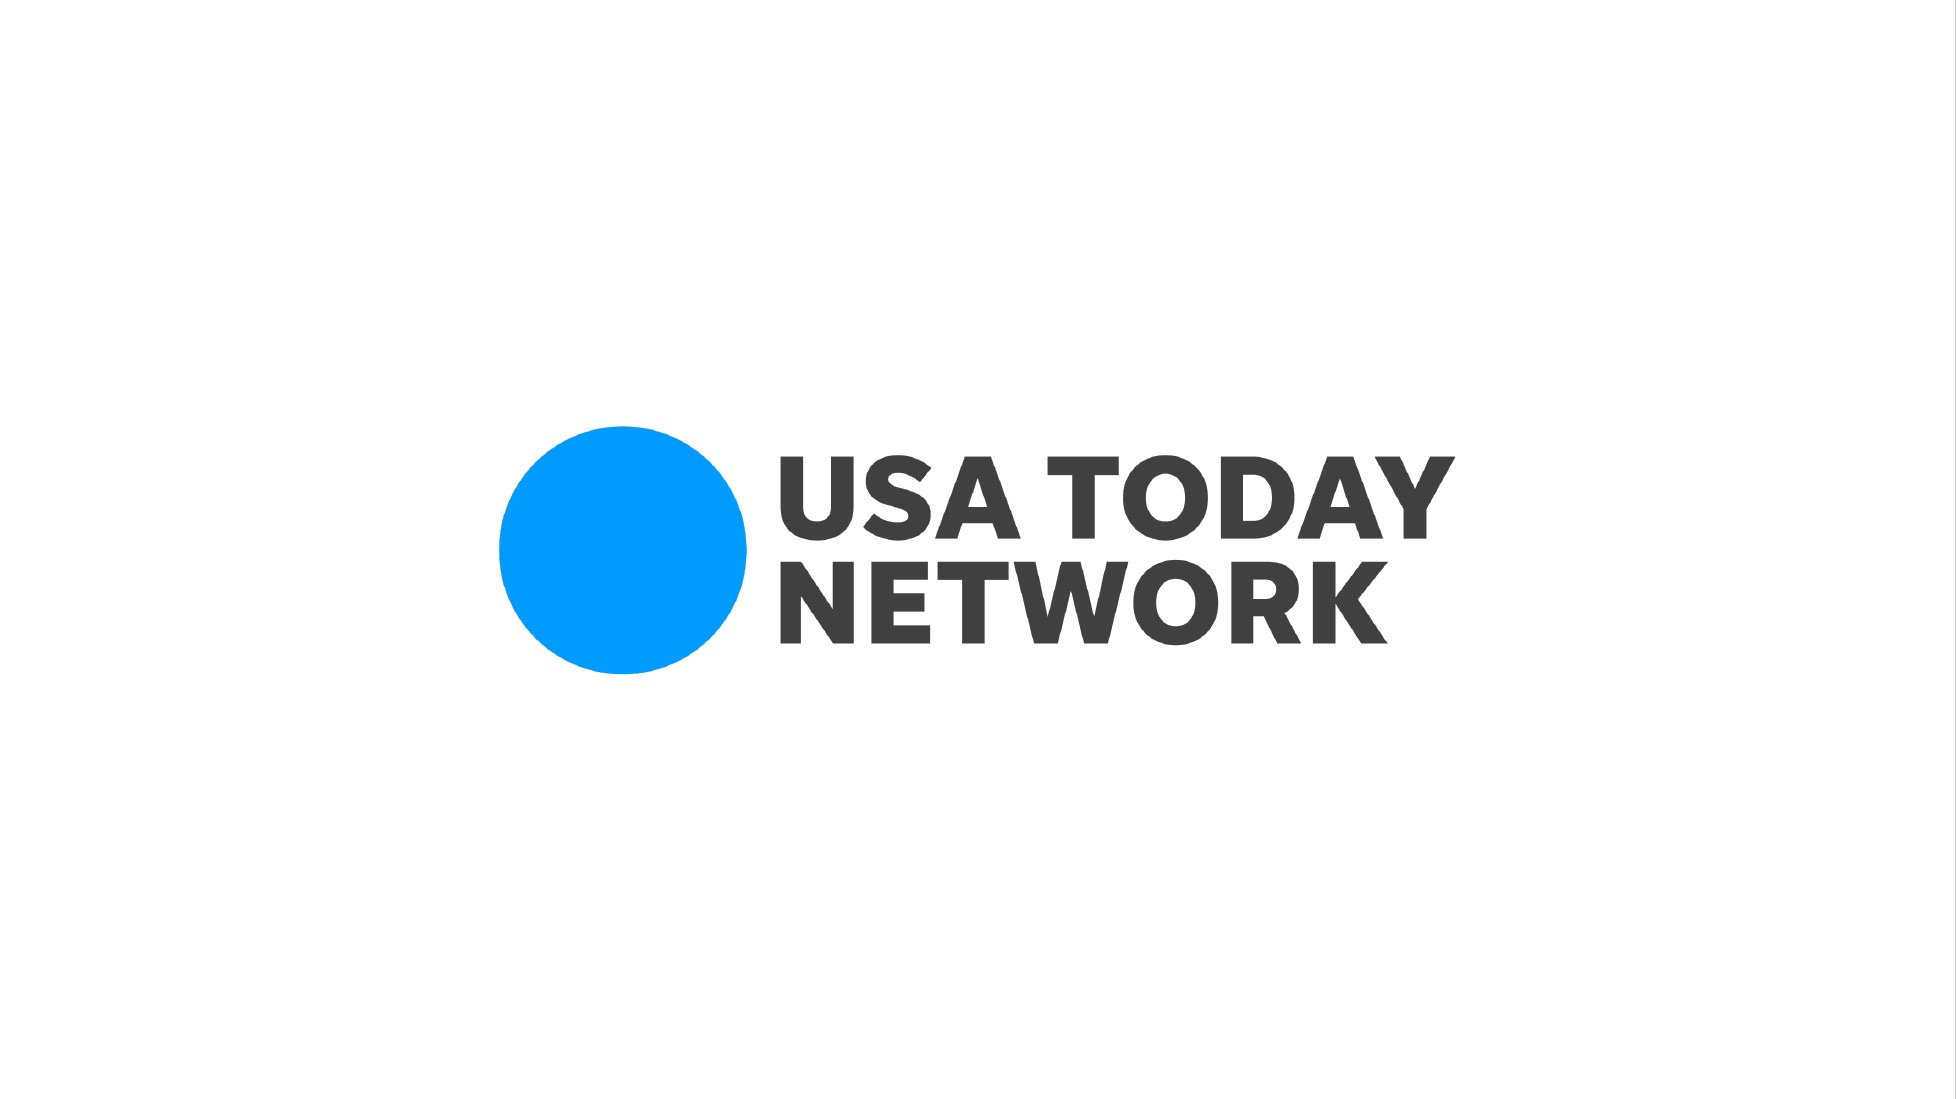 USA TODAY NETWORK Brand Refresh: Print